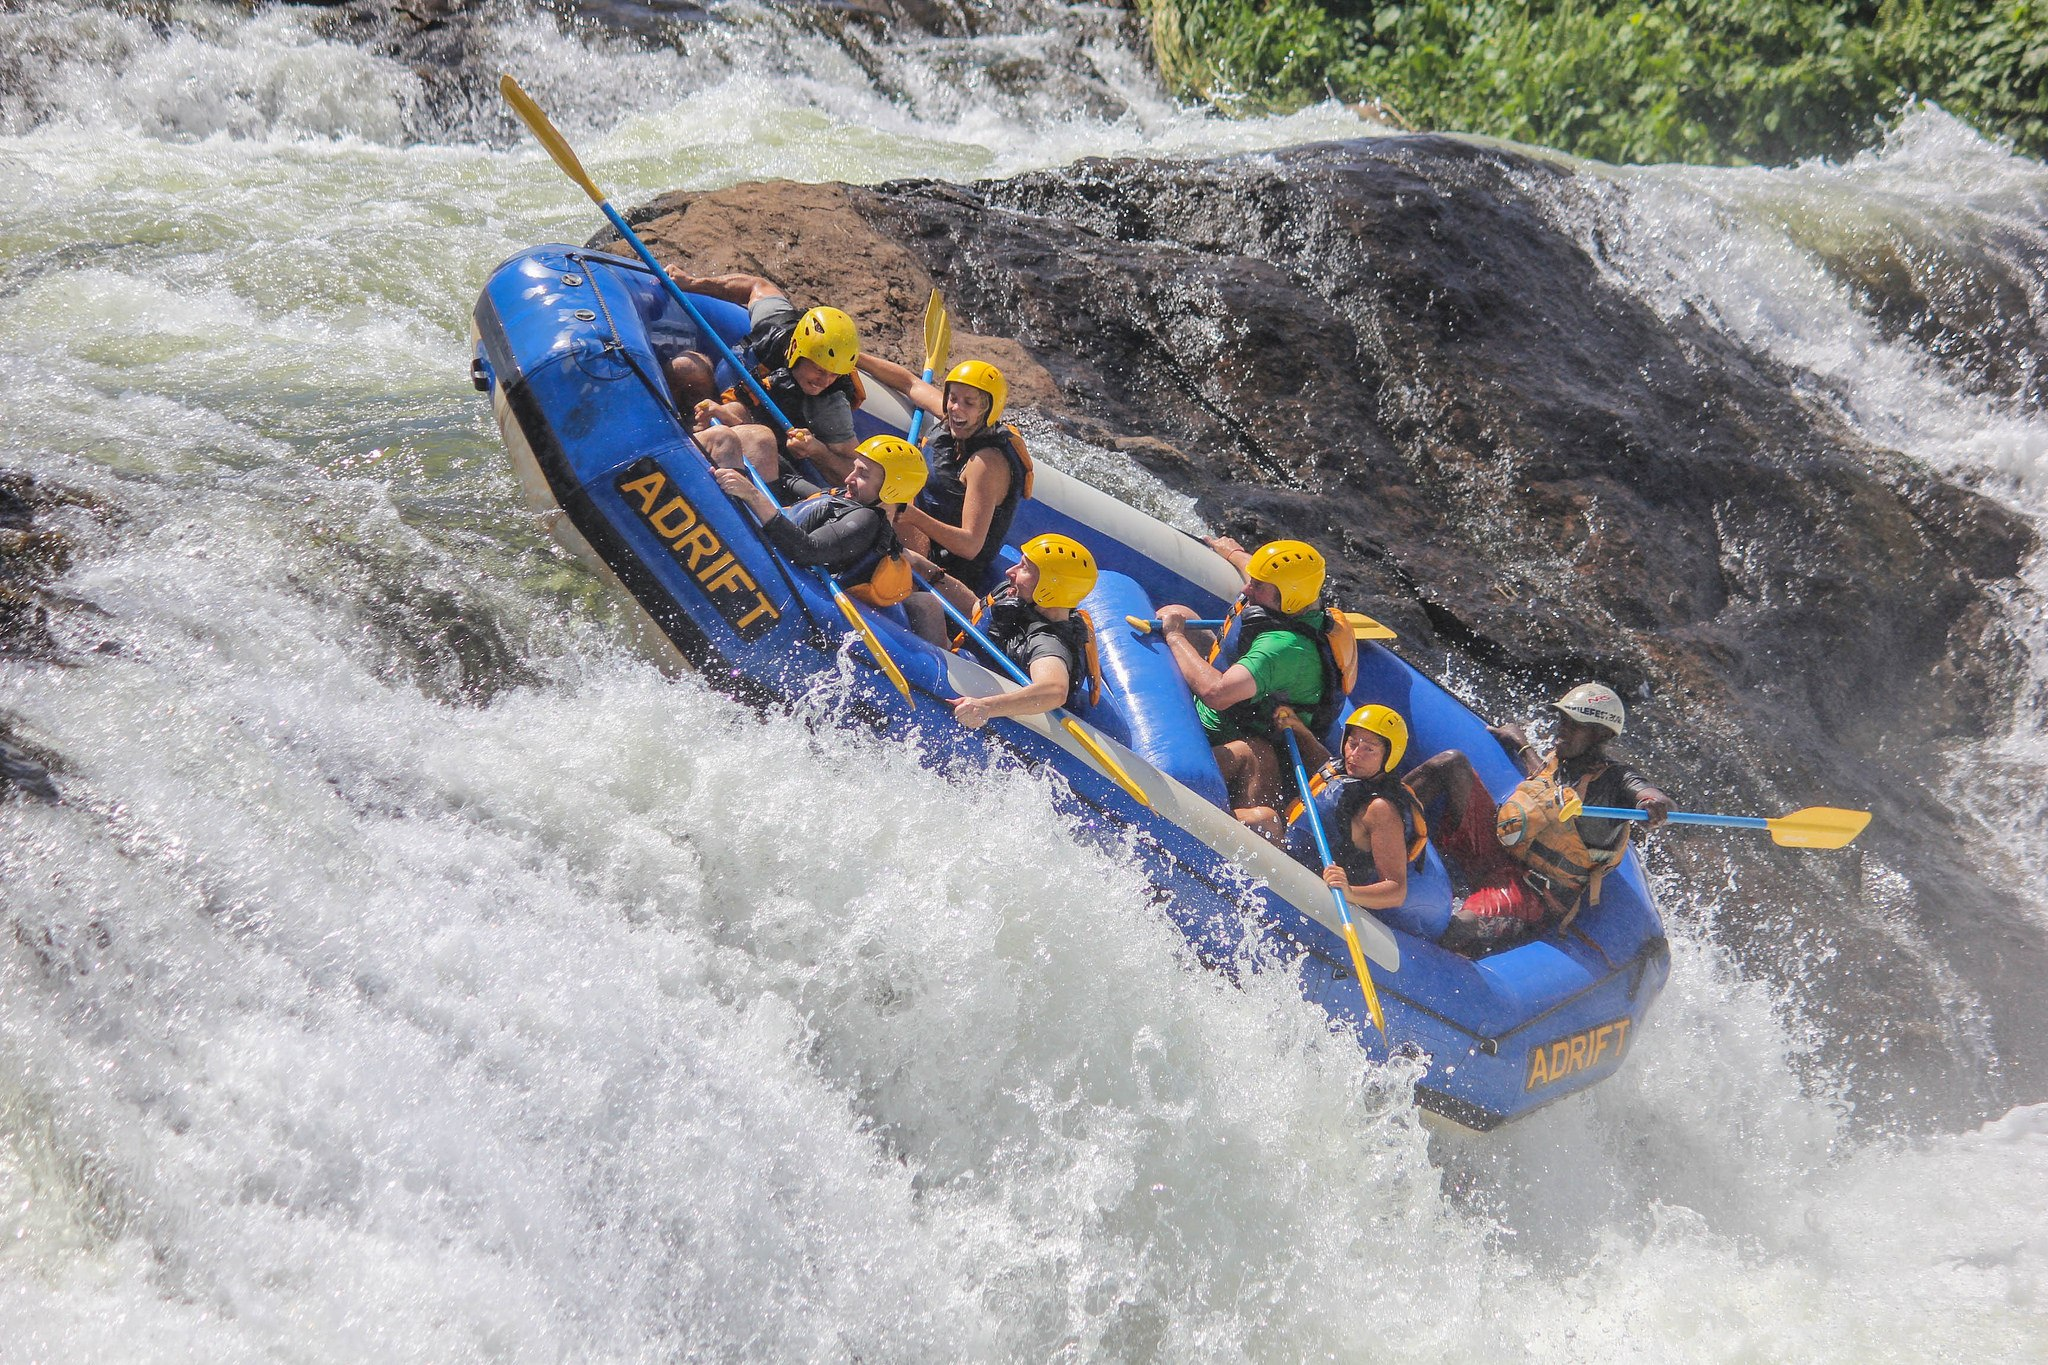 Whitewater rafting on the Nile River